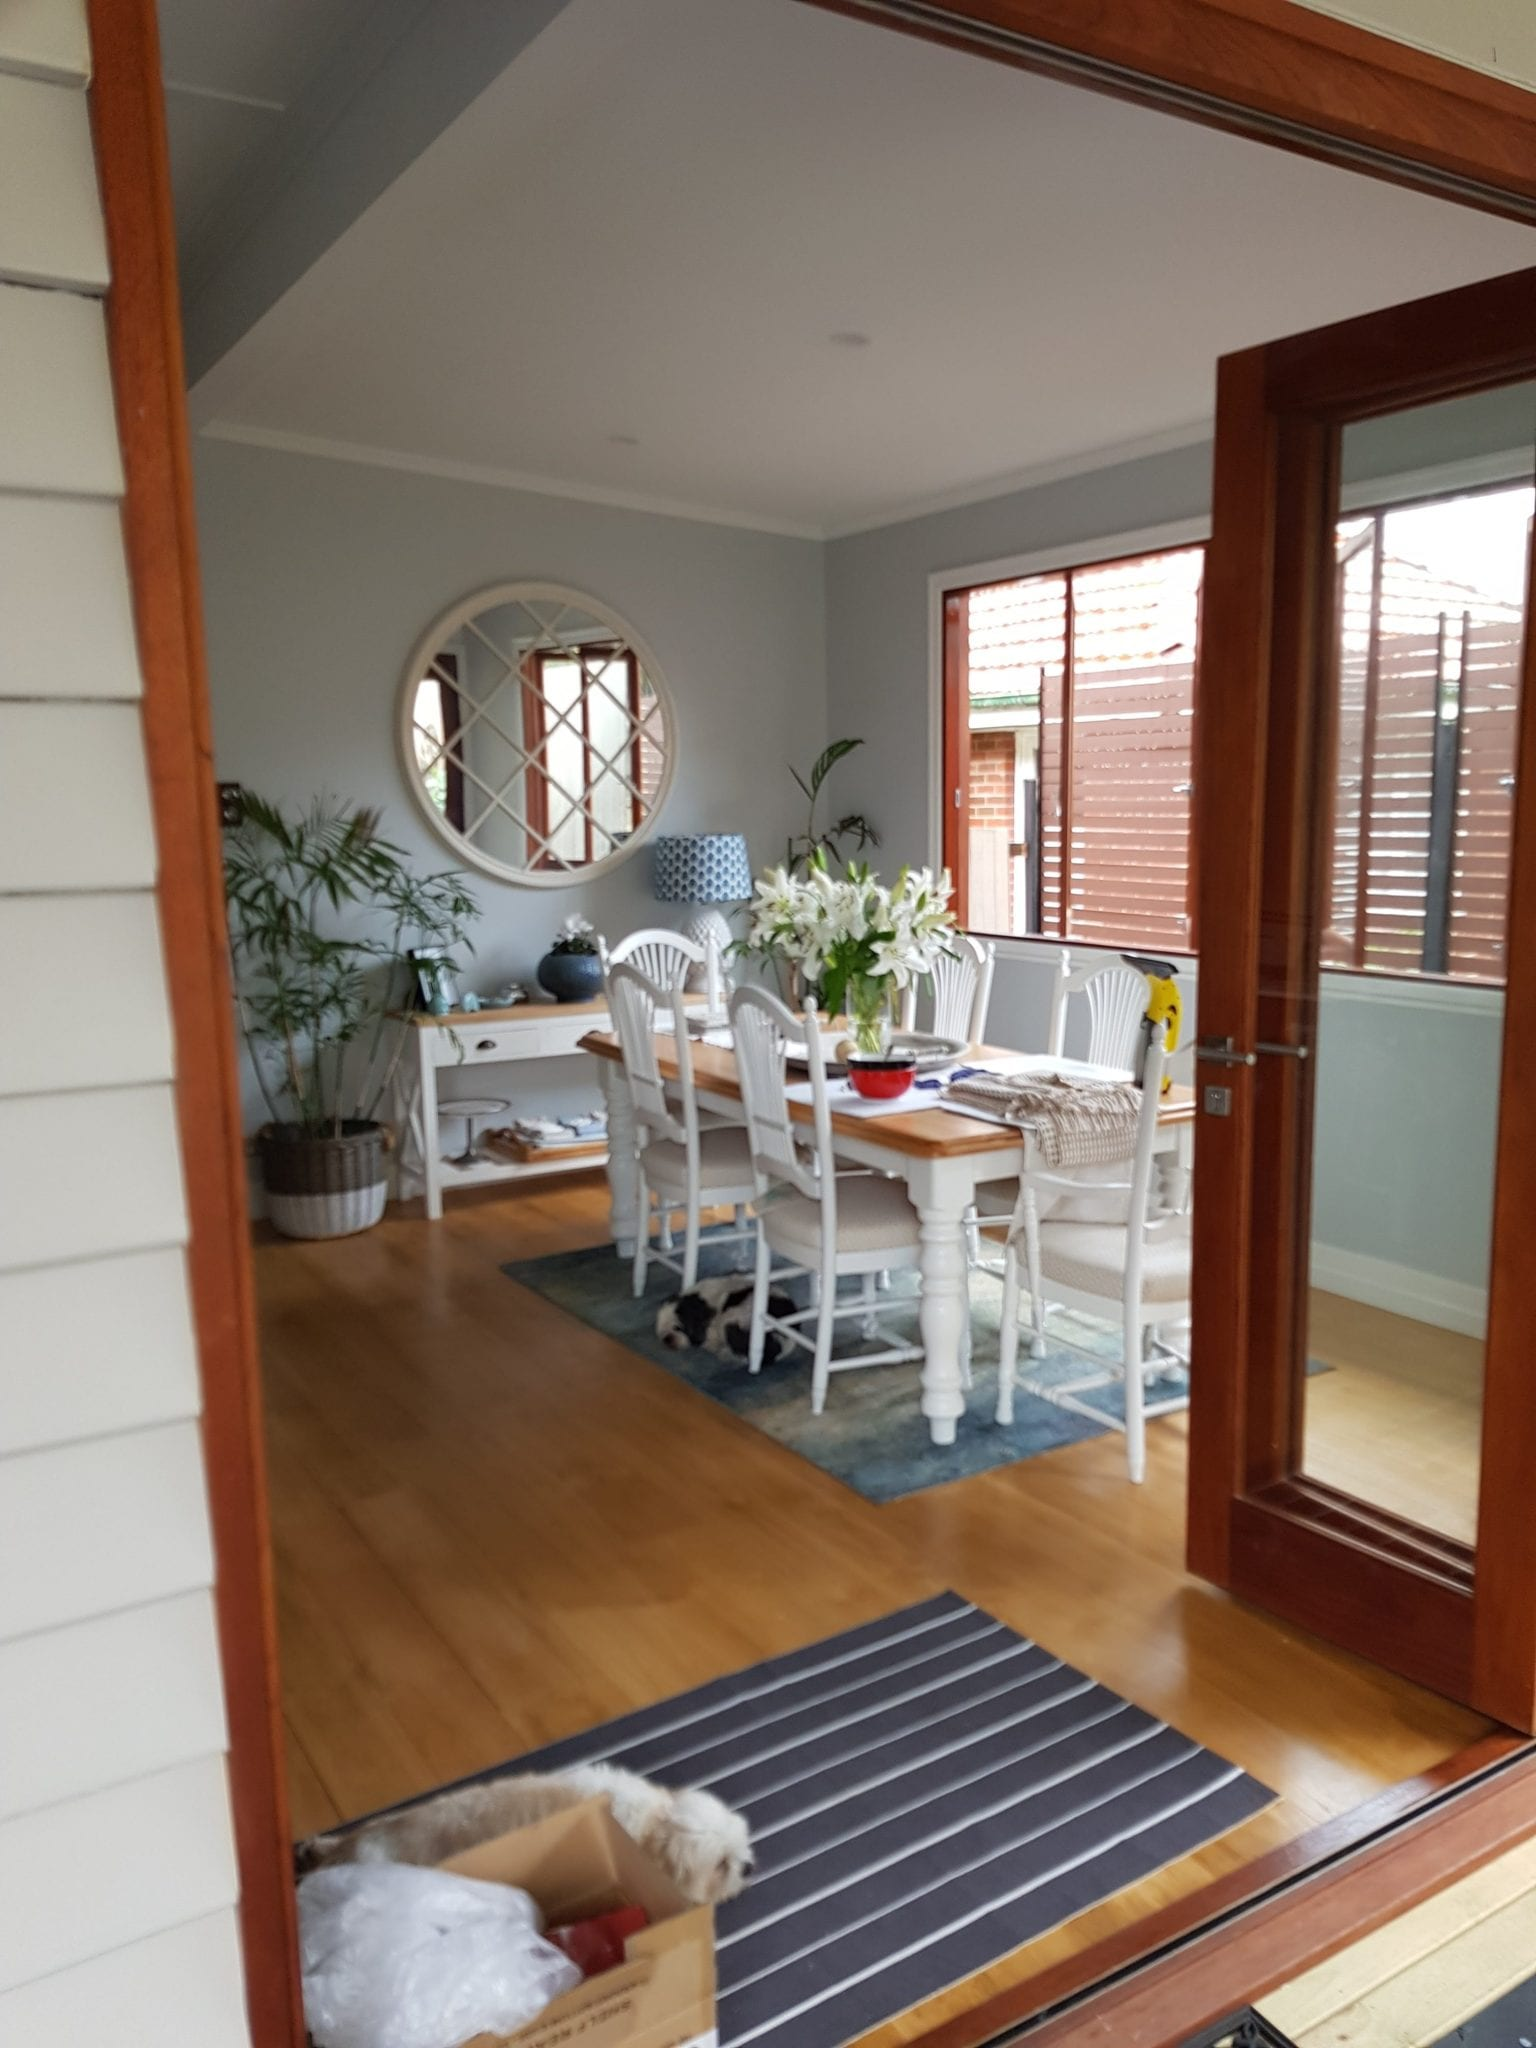 timber flooring and bifold doors and light blue interior walls